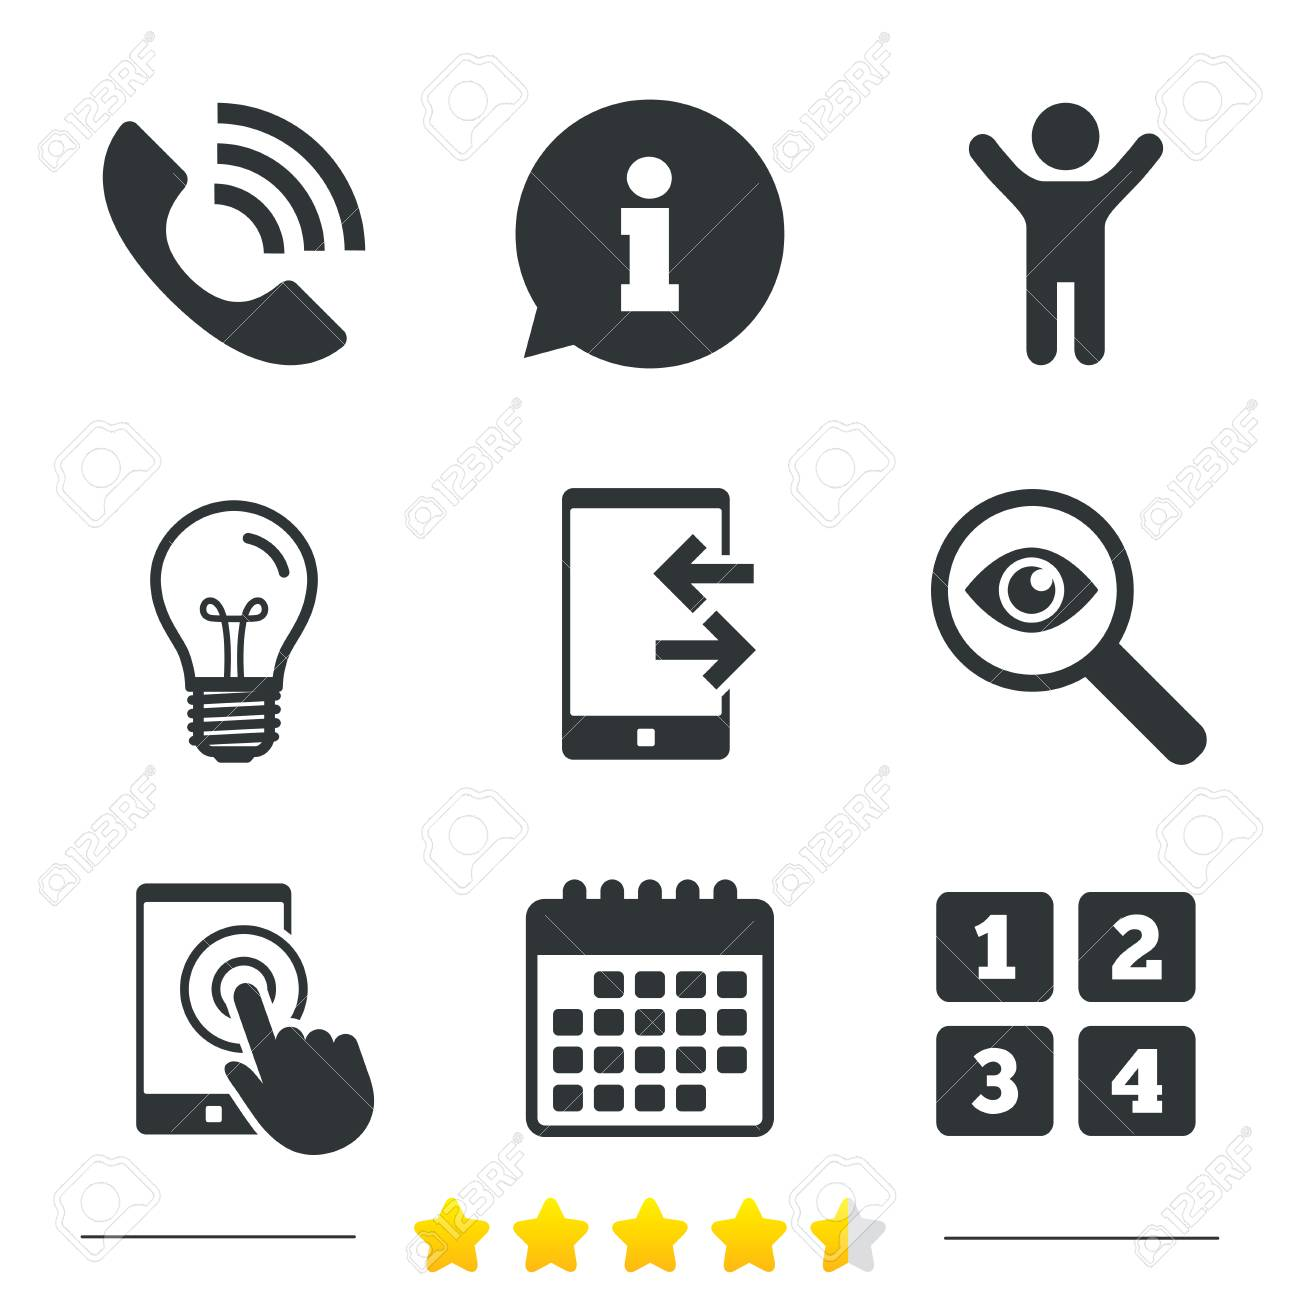 Phone icons touch screen smartphone sign call center support phone icons touch screen smartphone sign call center support symbol cellphone keyboard symbol biocorpaavc Gallery